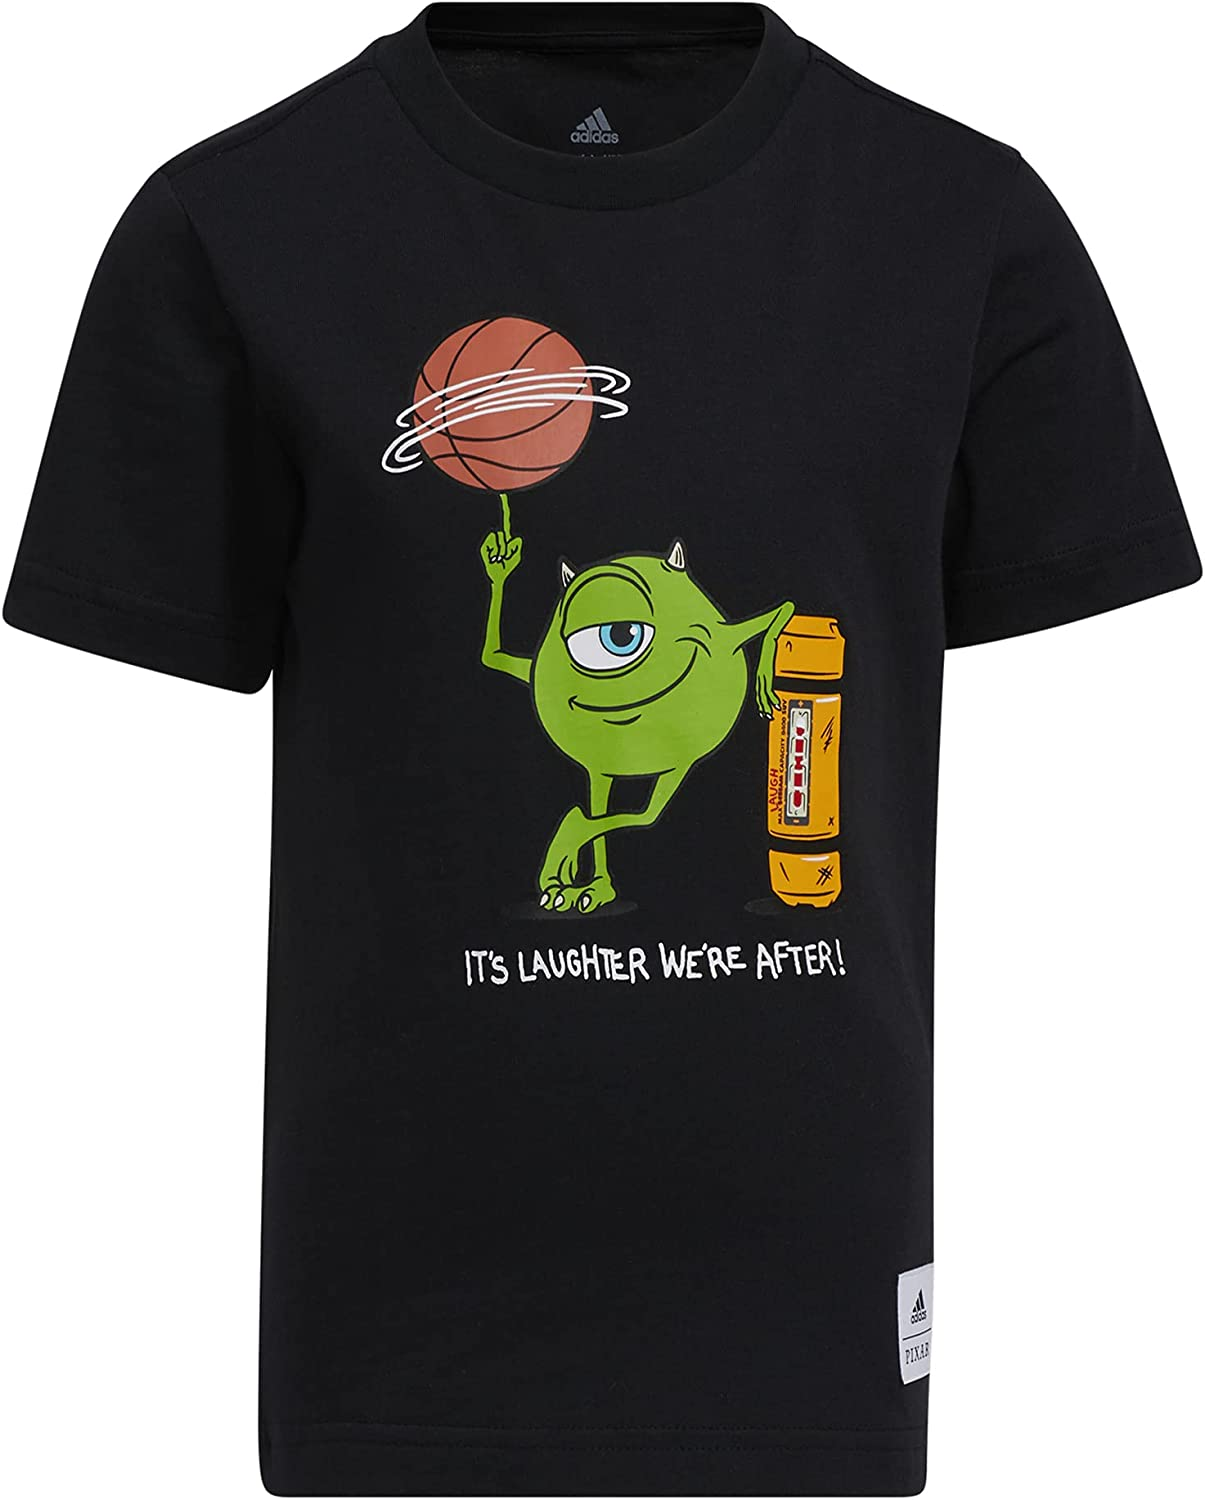 adidas Kids' Little Tee Canister 2021 new Very popular Laugh